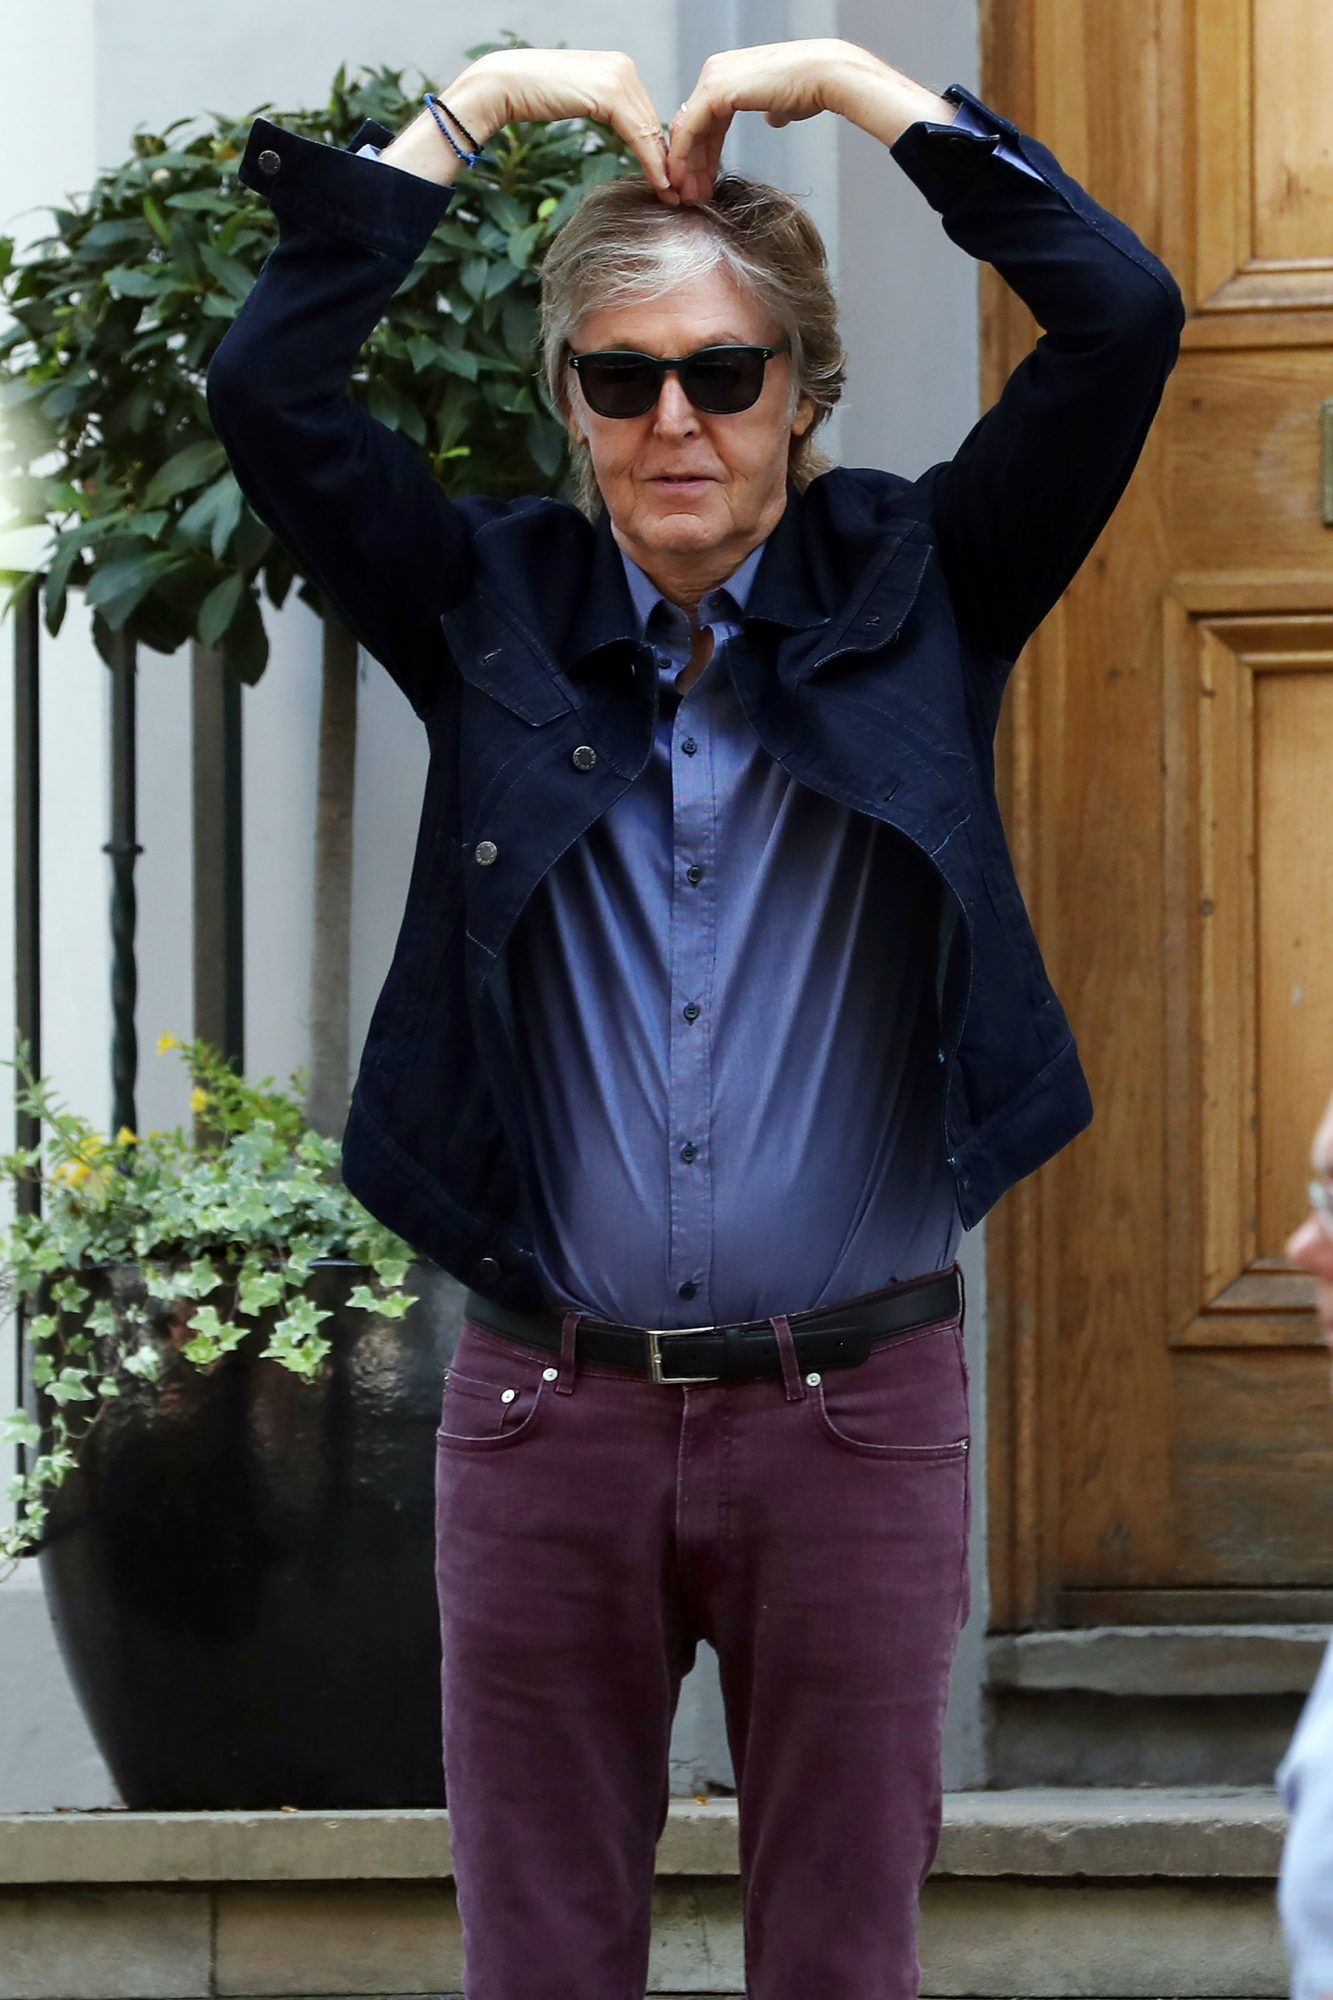 Paul McCartney and Nacy Shevell out and about, London, UK - 23 Jul 2018